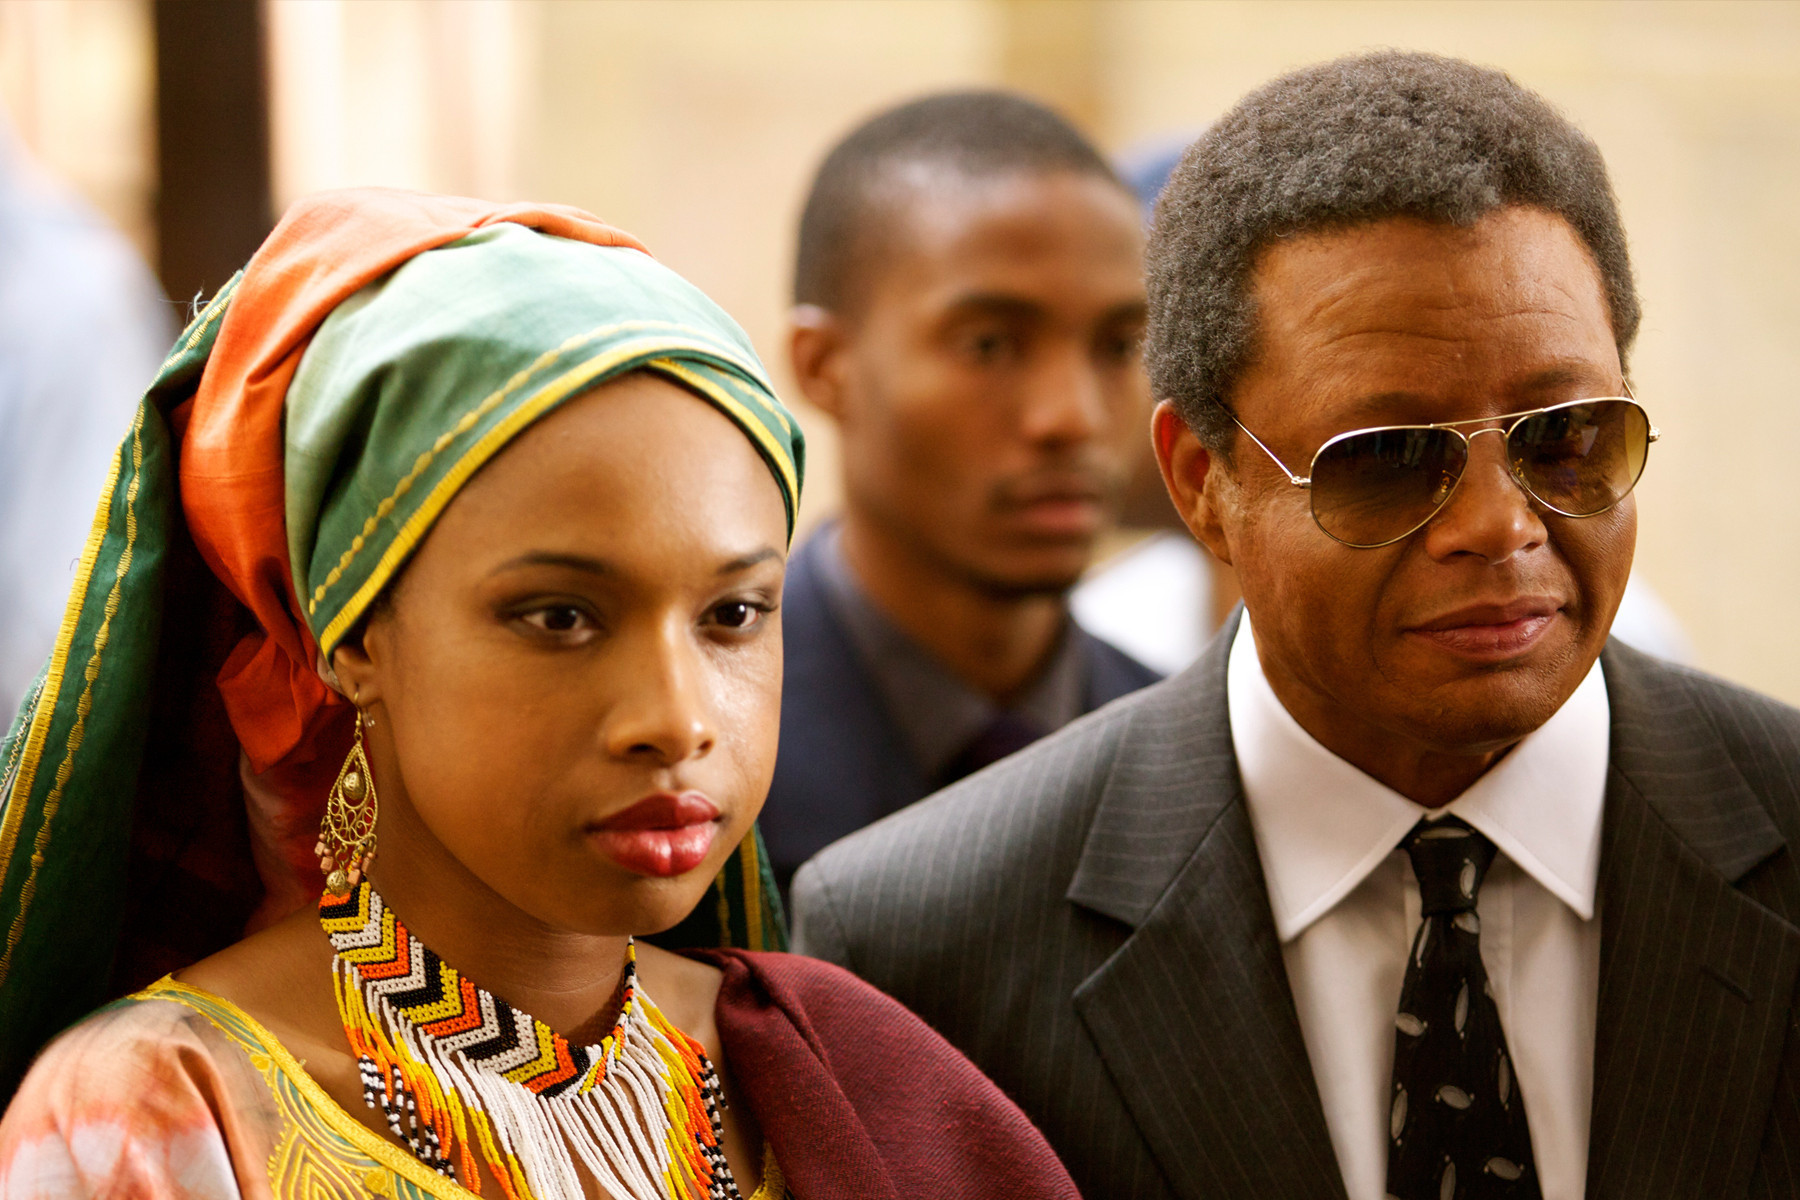 'Winnie Mandela' review: Only sings one note - Orlando ...